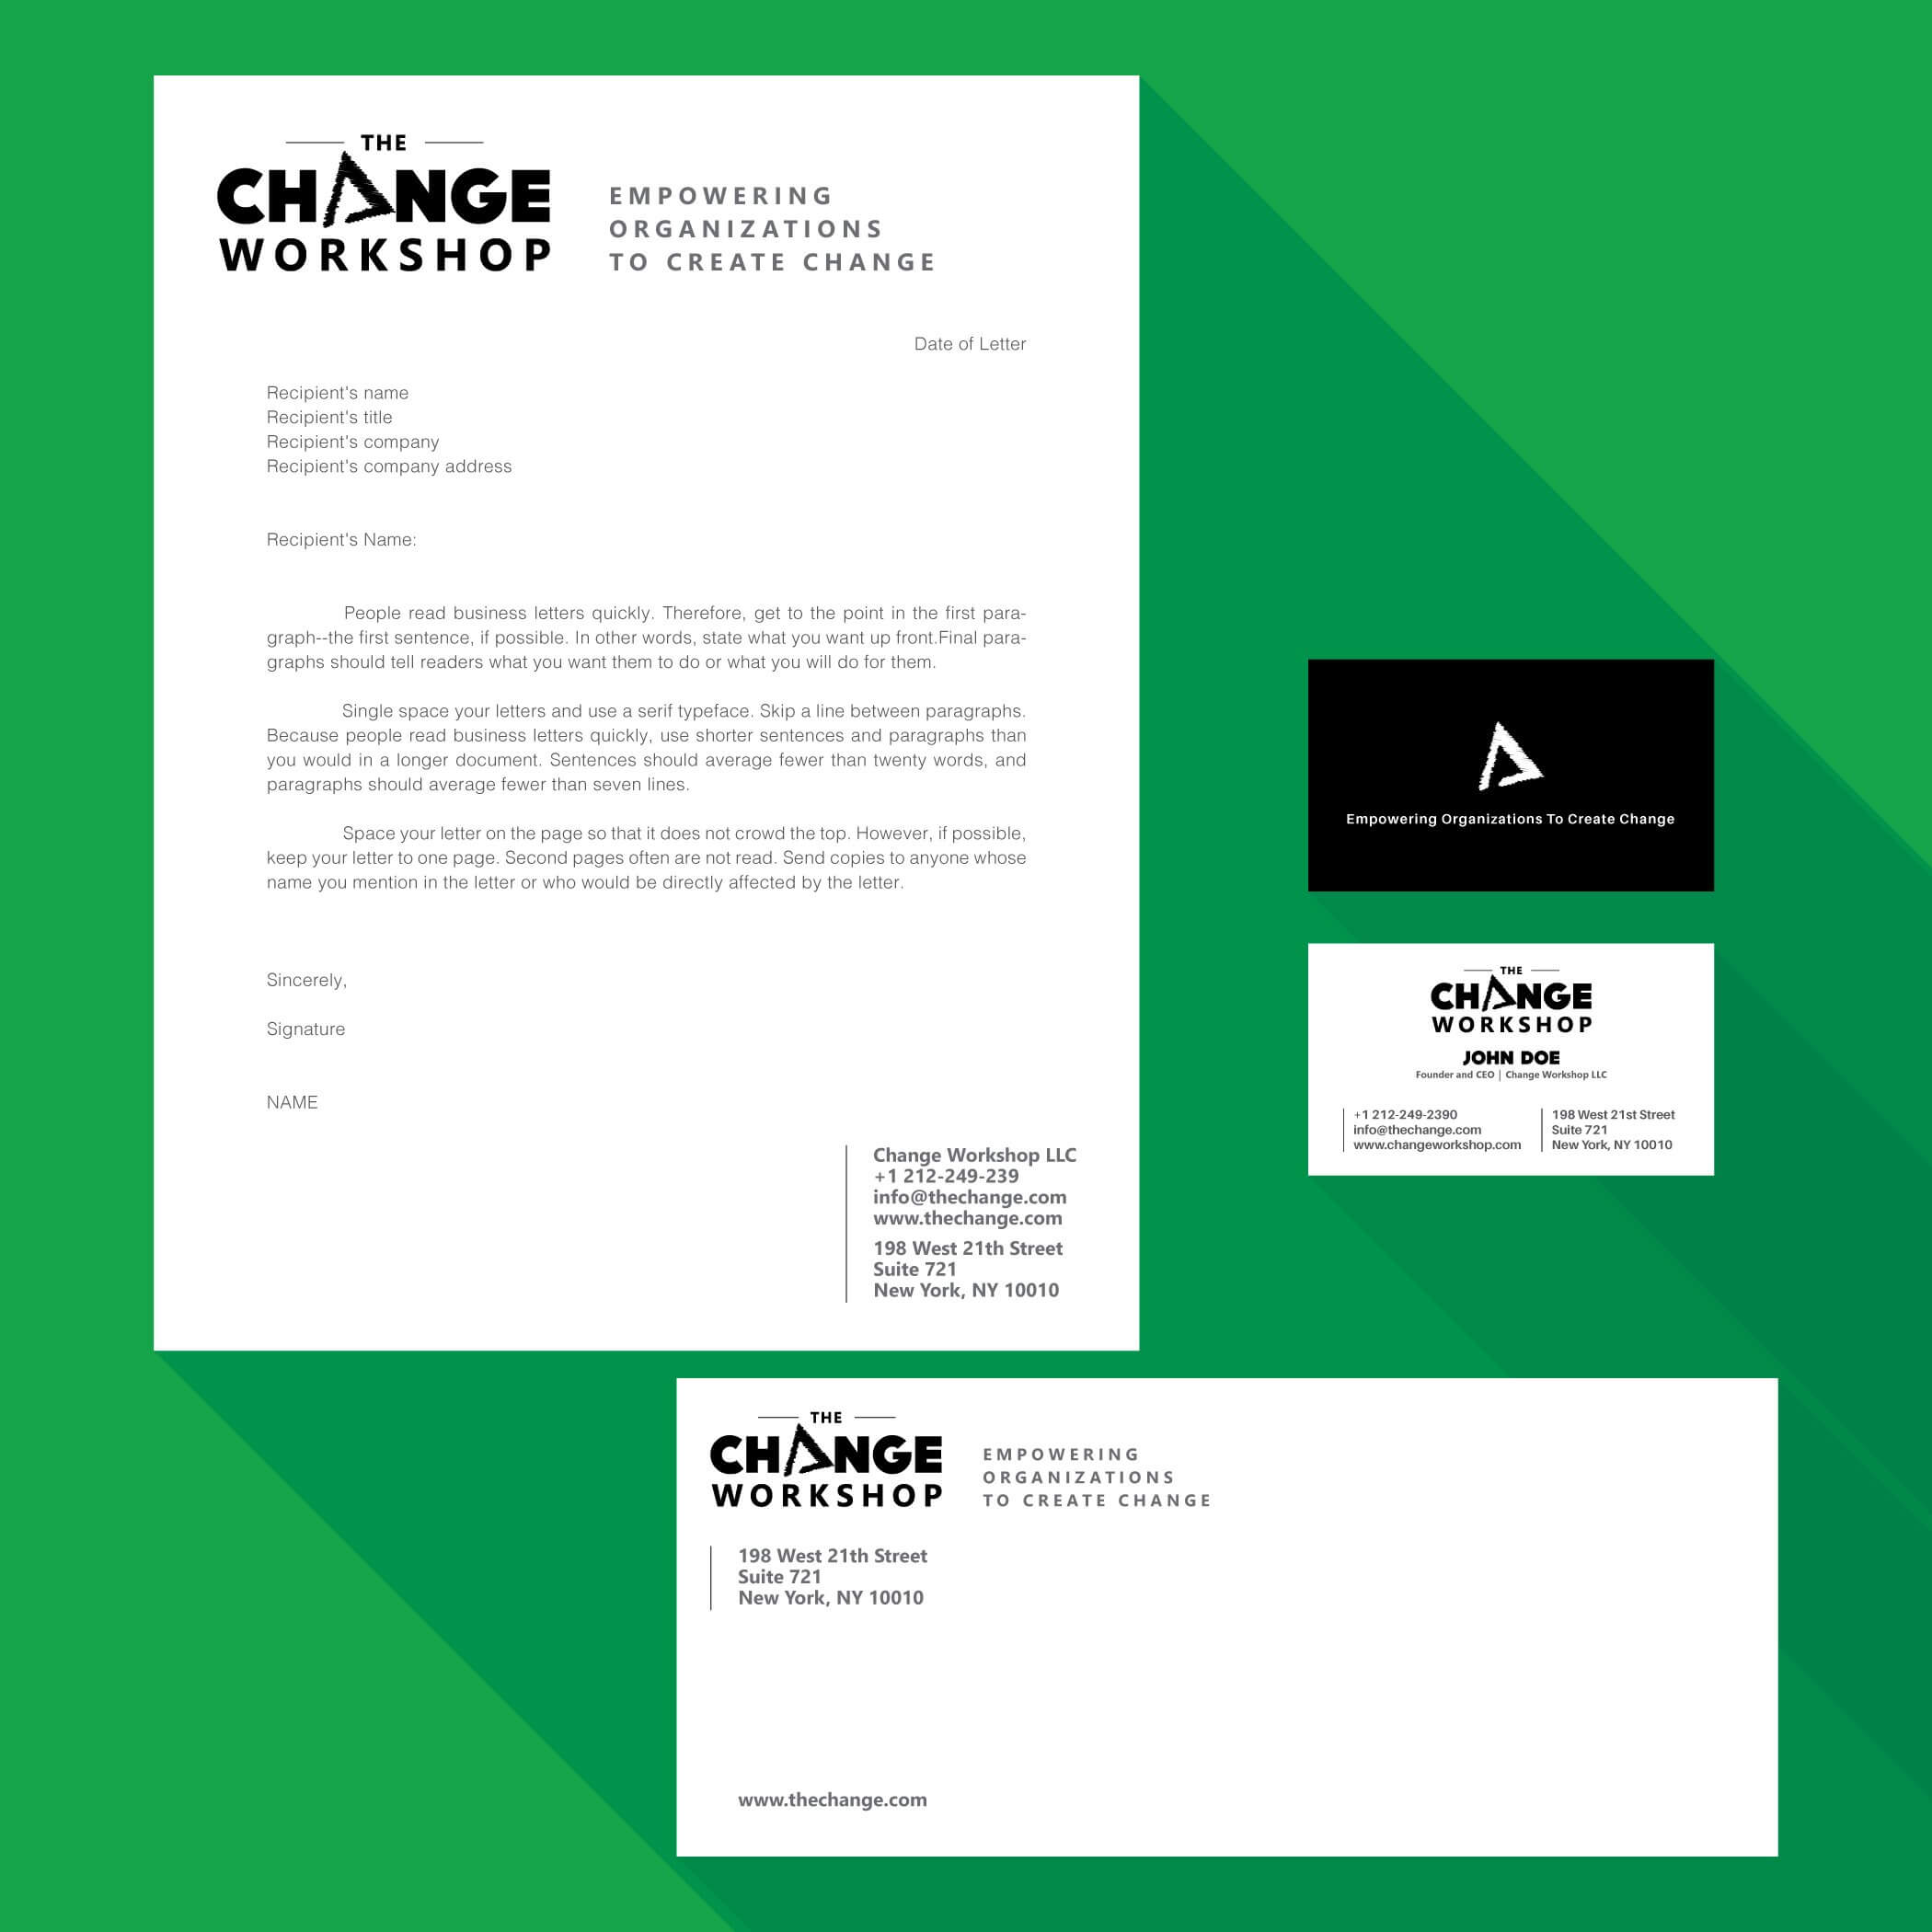 letterhead and stationery designed by niteshthapa